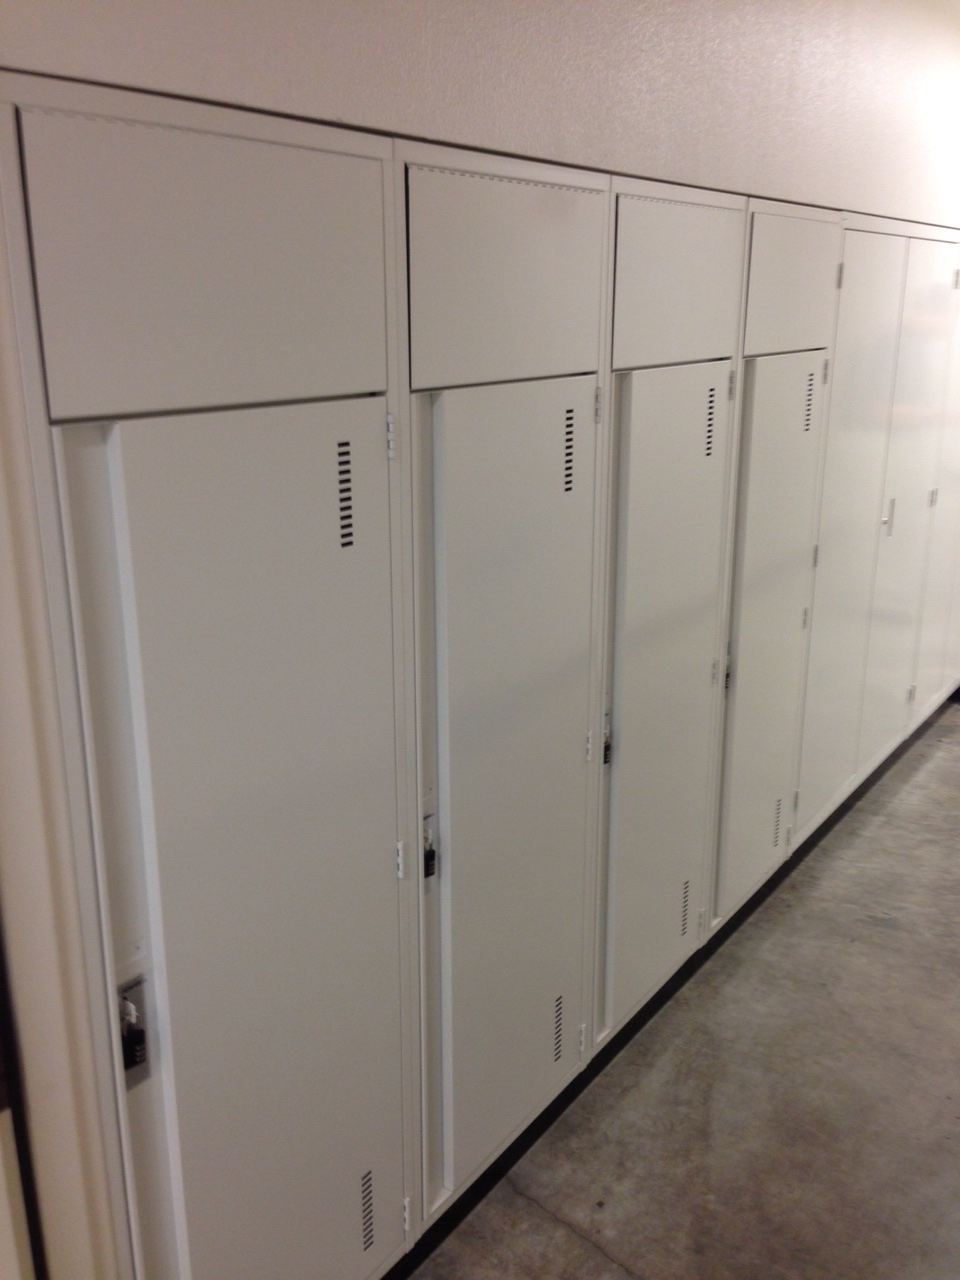 Brilliant Penco Lockers for Best Locker Choice: Penco Lockers | Penco Shelving | Locker Distributors